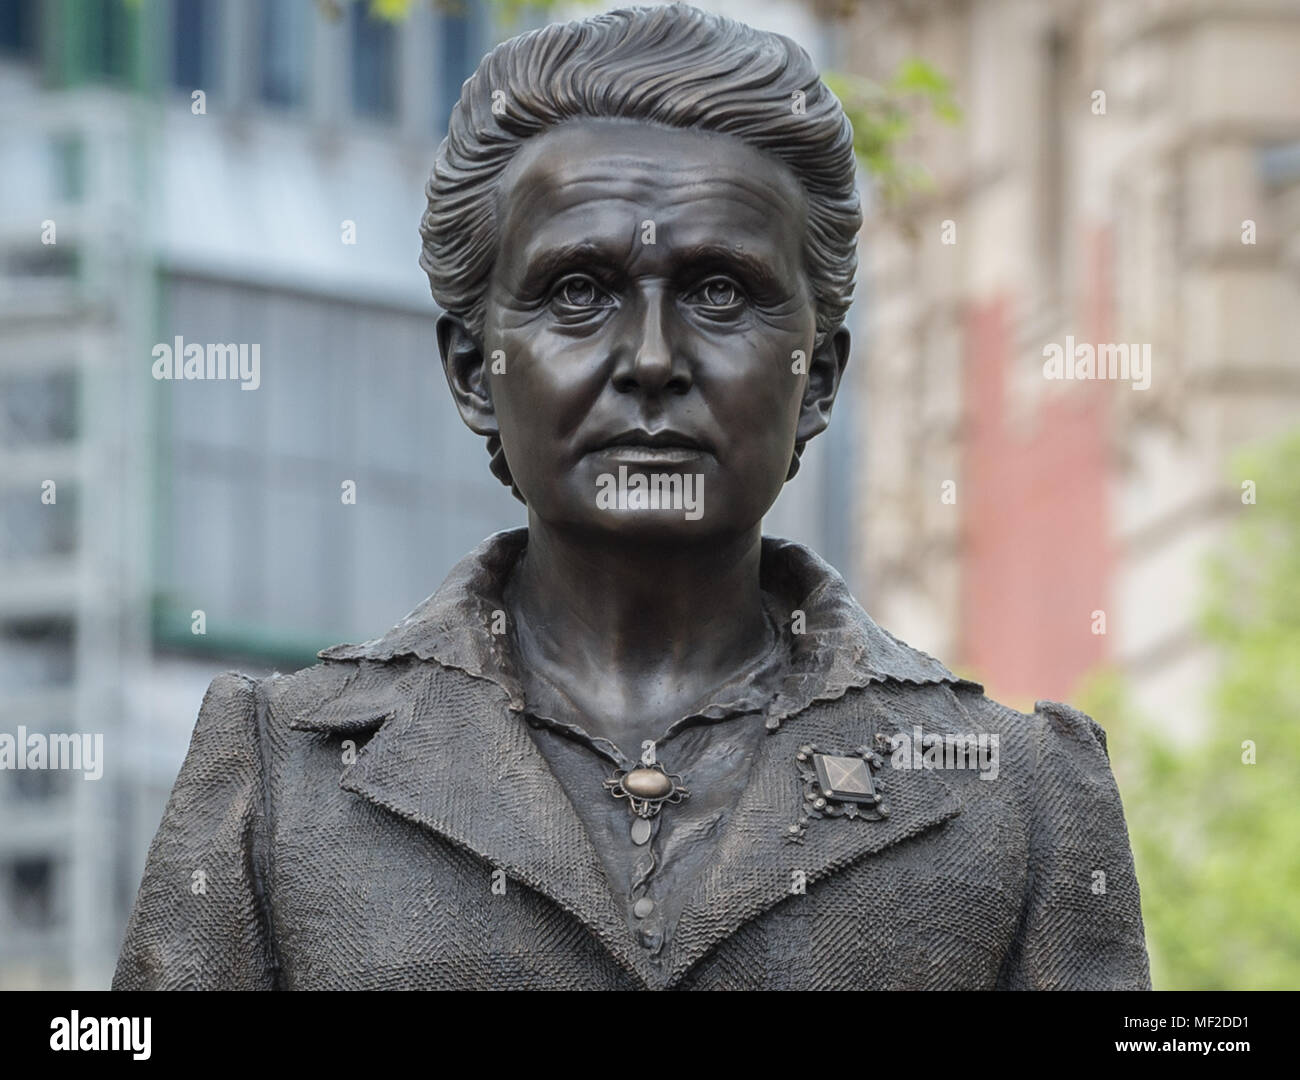 London, UK. 24th April, 2018. Statue of Millicent Fawcett is finally unveiled in Parliament Square. The first statue of a woman in Parliament Square joins the line-up of male figures to mark the centenary of women's suffrage in Britain - two years after the campaign to get female representation outside the Palace of Westminster began. Credit: Guy Corbishley/Alamy Live News - Stock Image